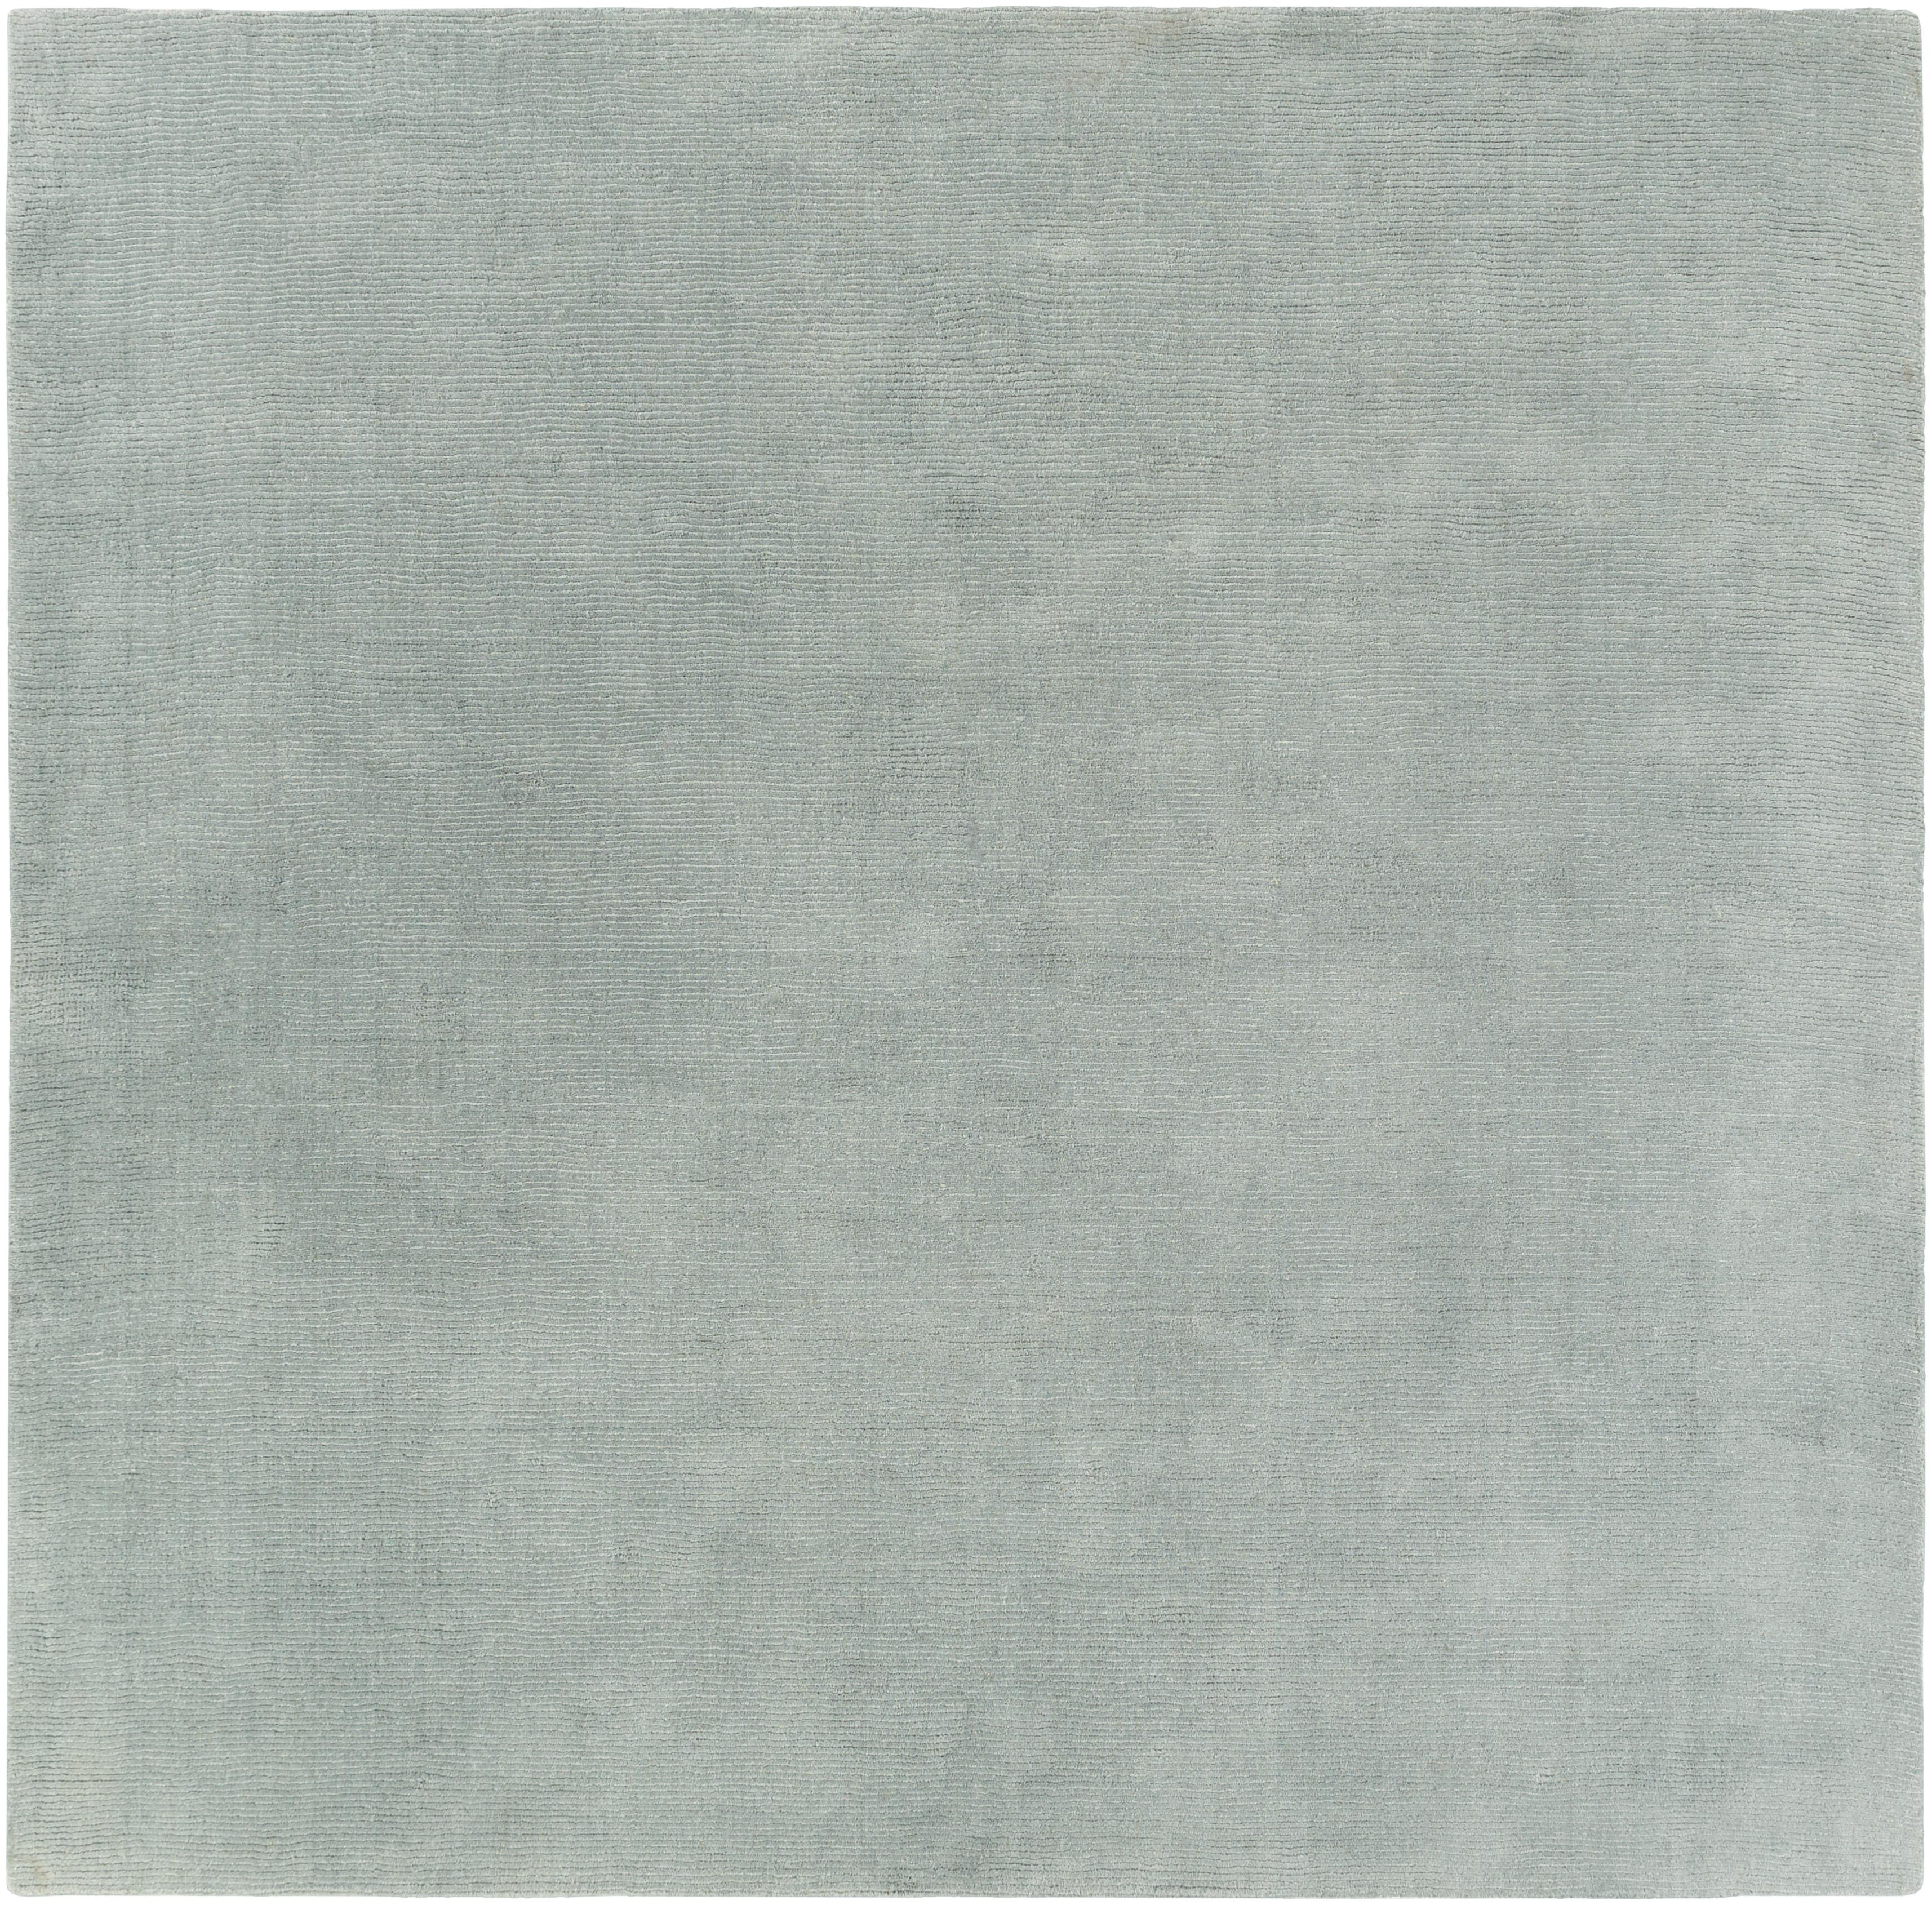 Surya Mystique 8' Square - Item Number: M5328-8SQ